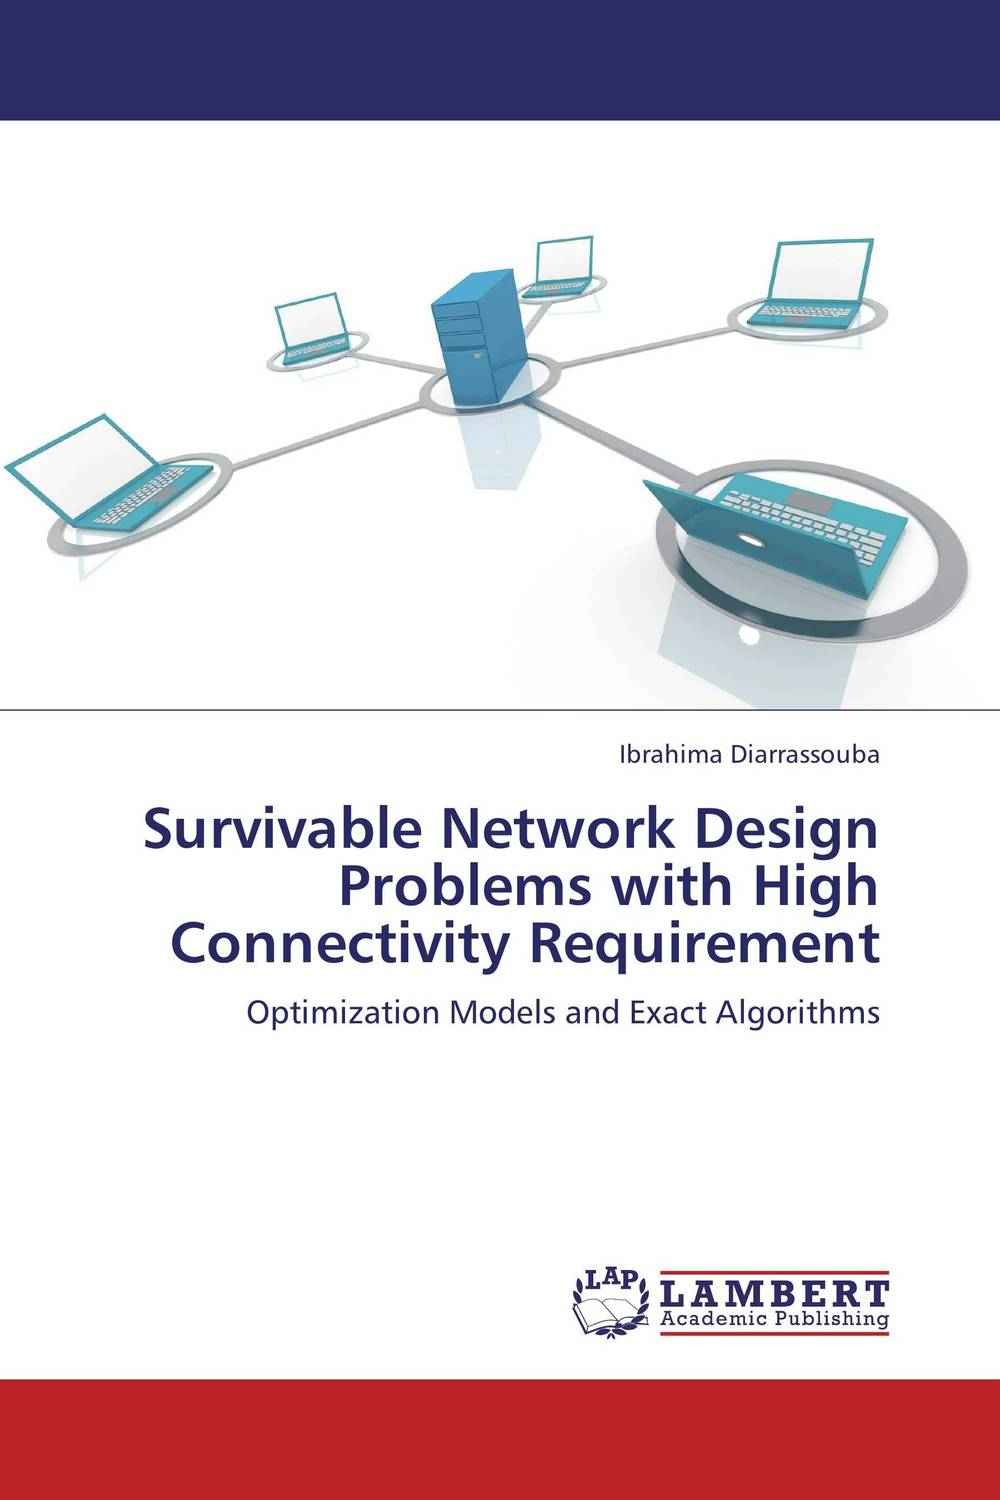 Survivable Network Design Problems with High Connectivity Requirement annlee hines a planning for survivable networks